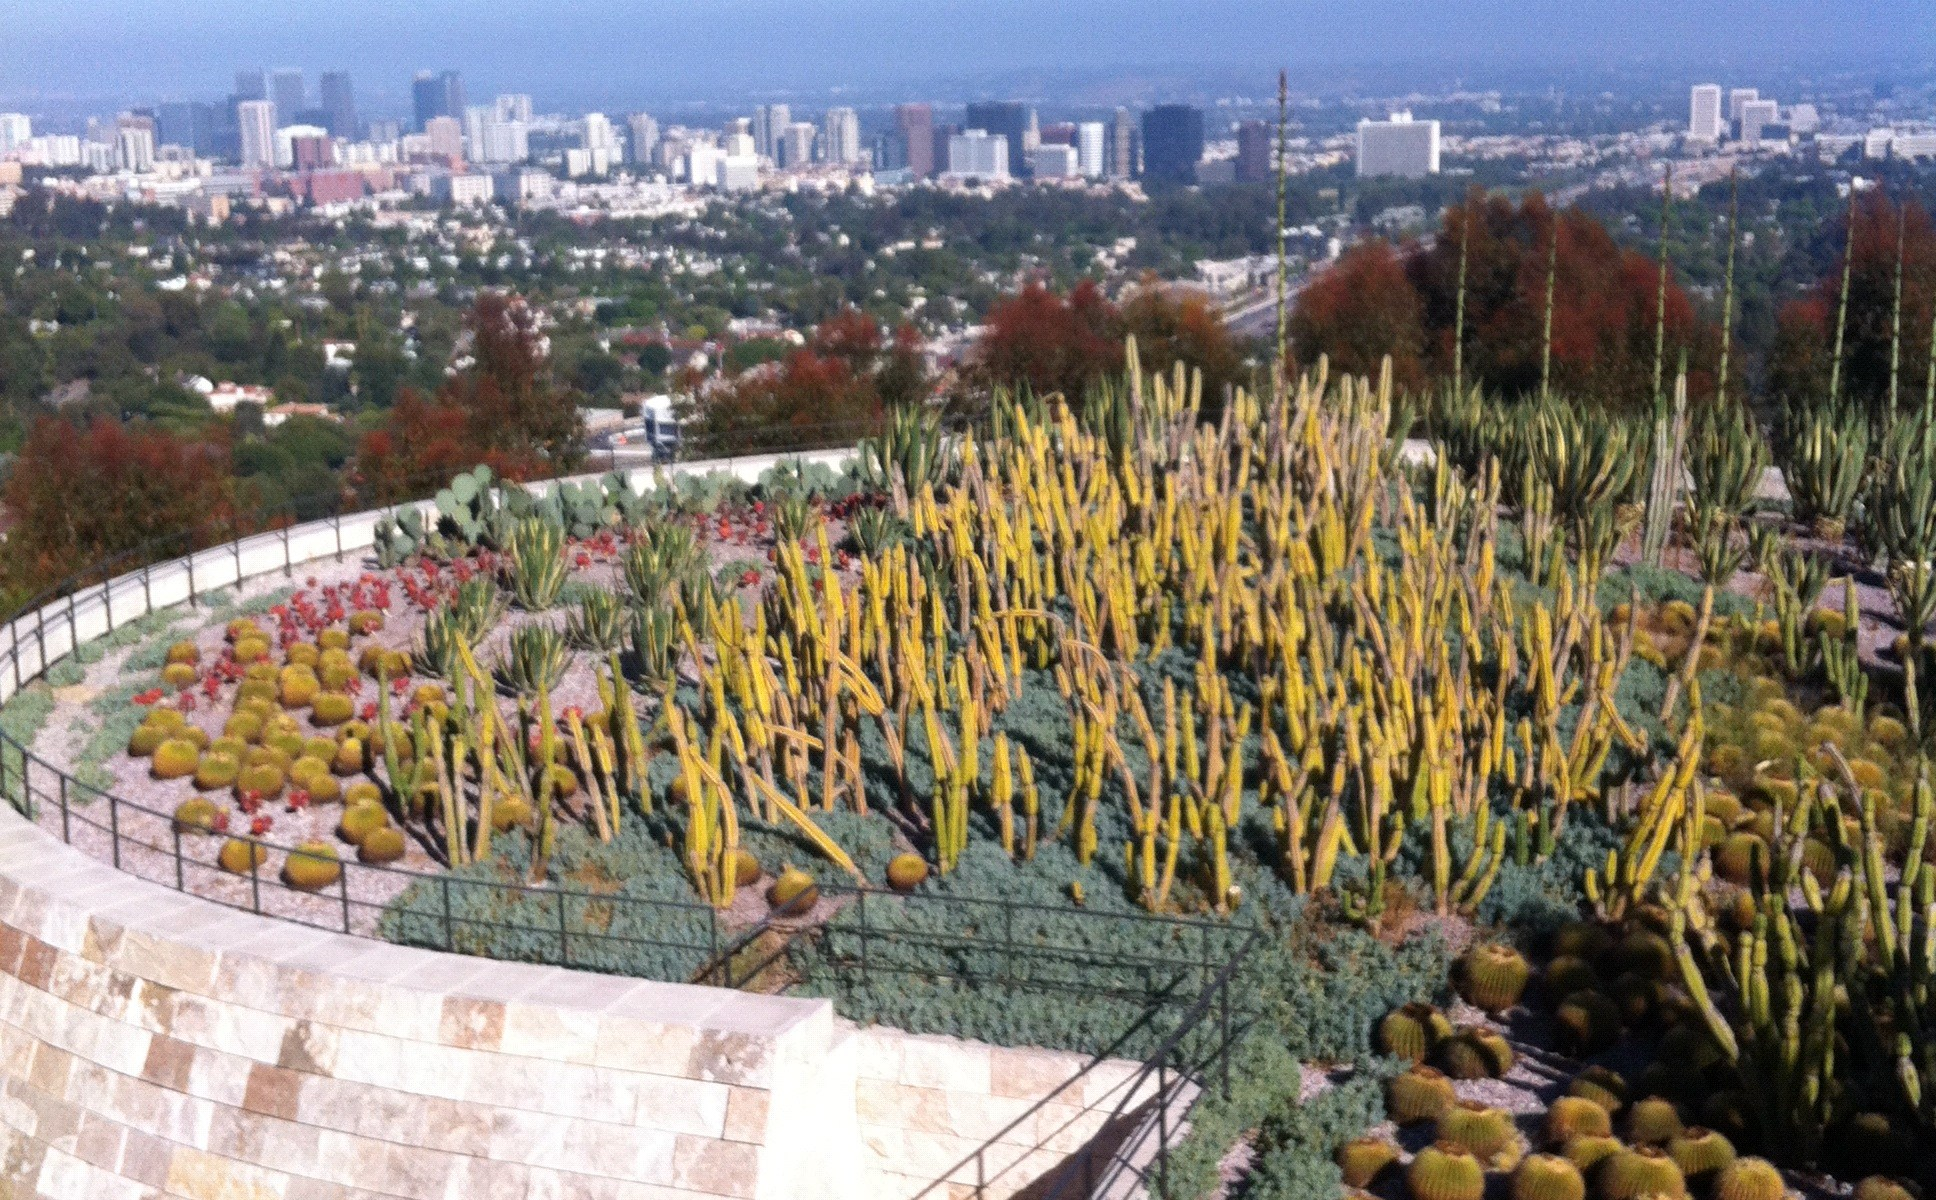 Getty Cactuses and LA Skyscrapers